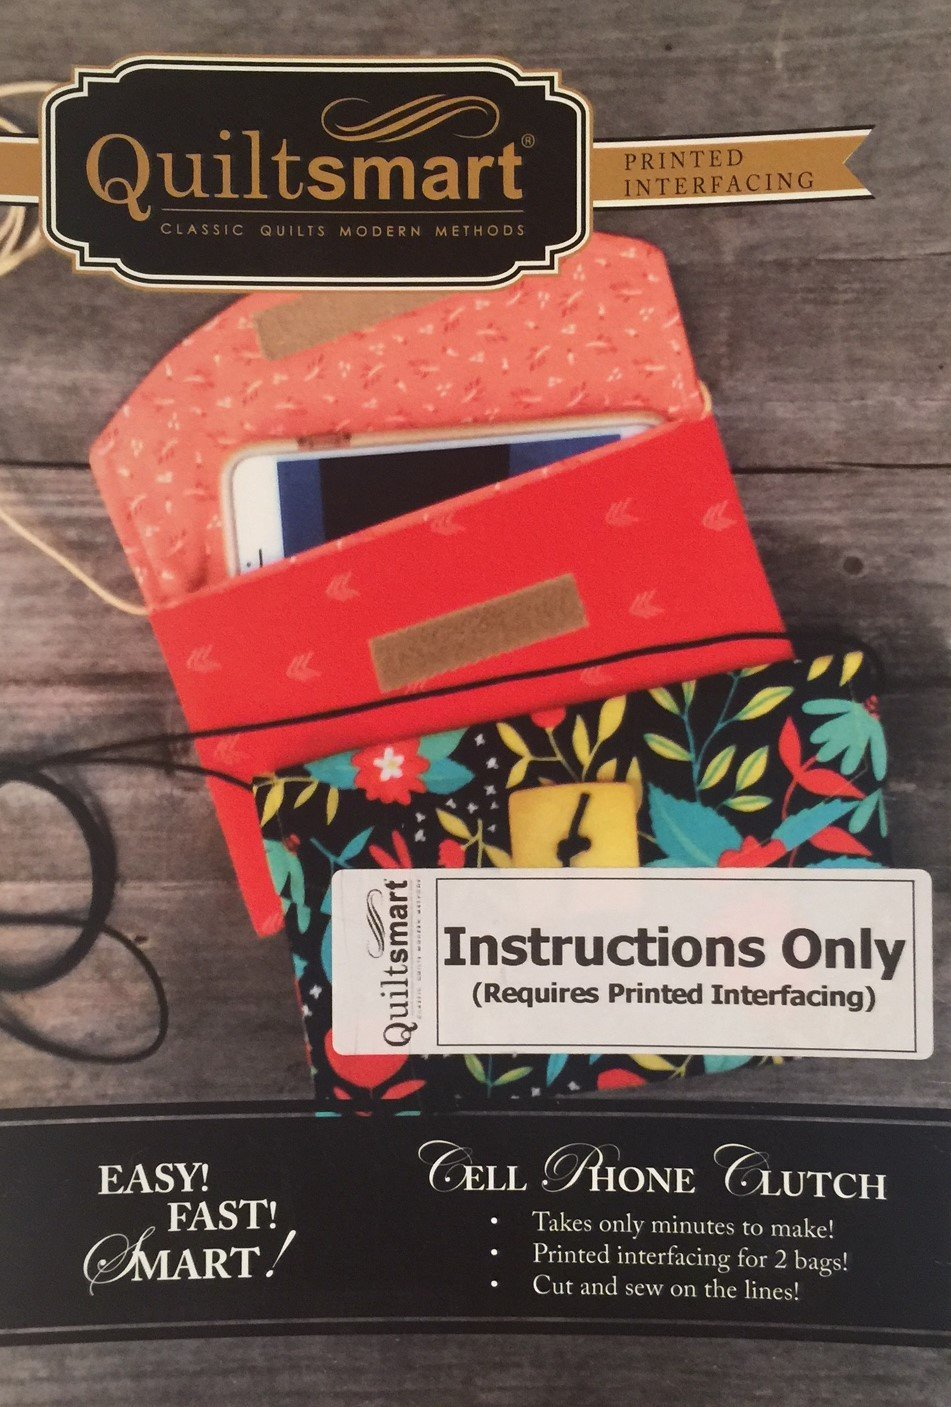 Cell Phone Clutch - Instructions Only